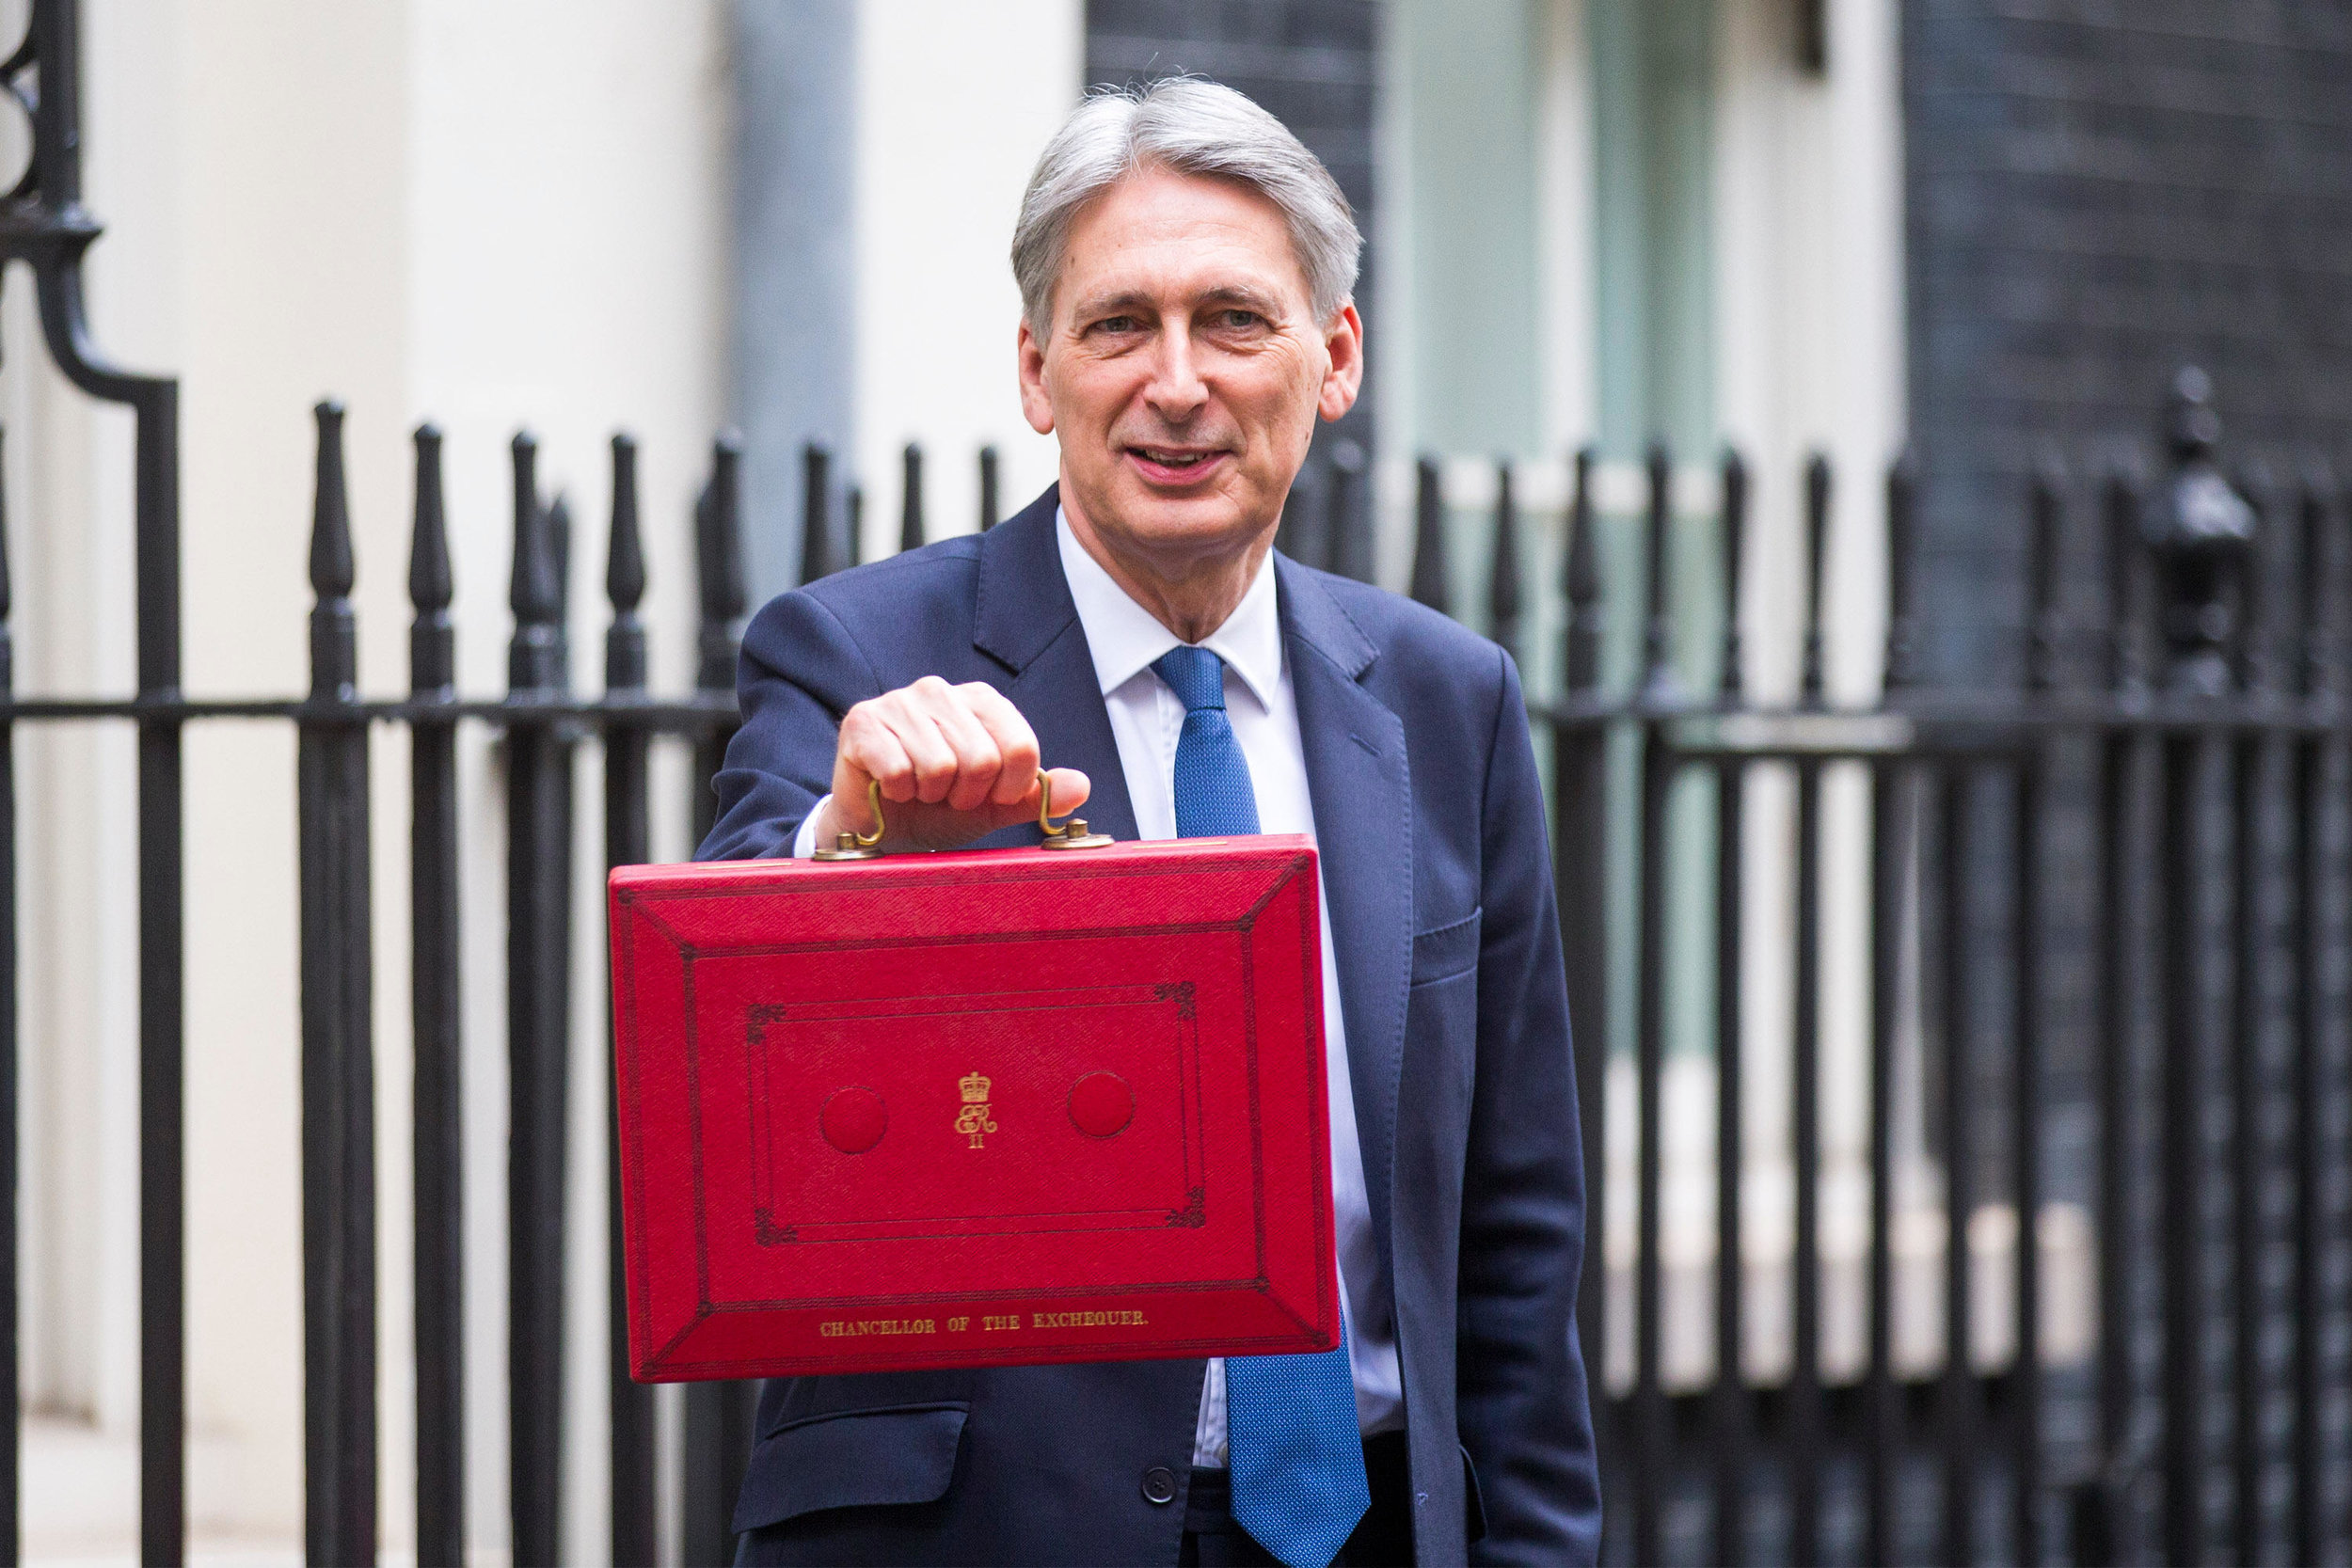 Philip Hammond, Chancellor of the Exchequer, leaves number 11 Downing Street on Budget day 2017.